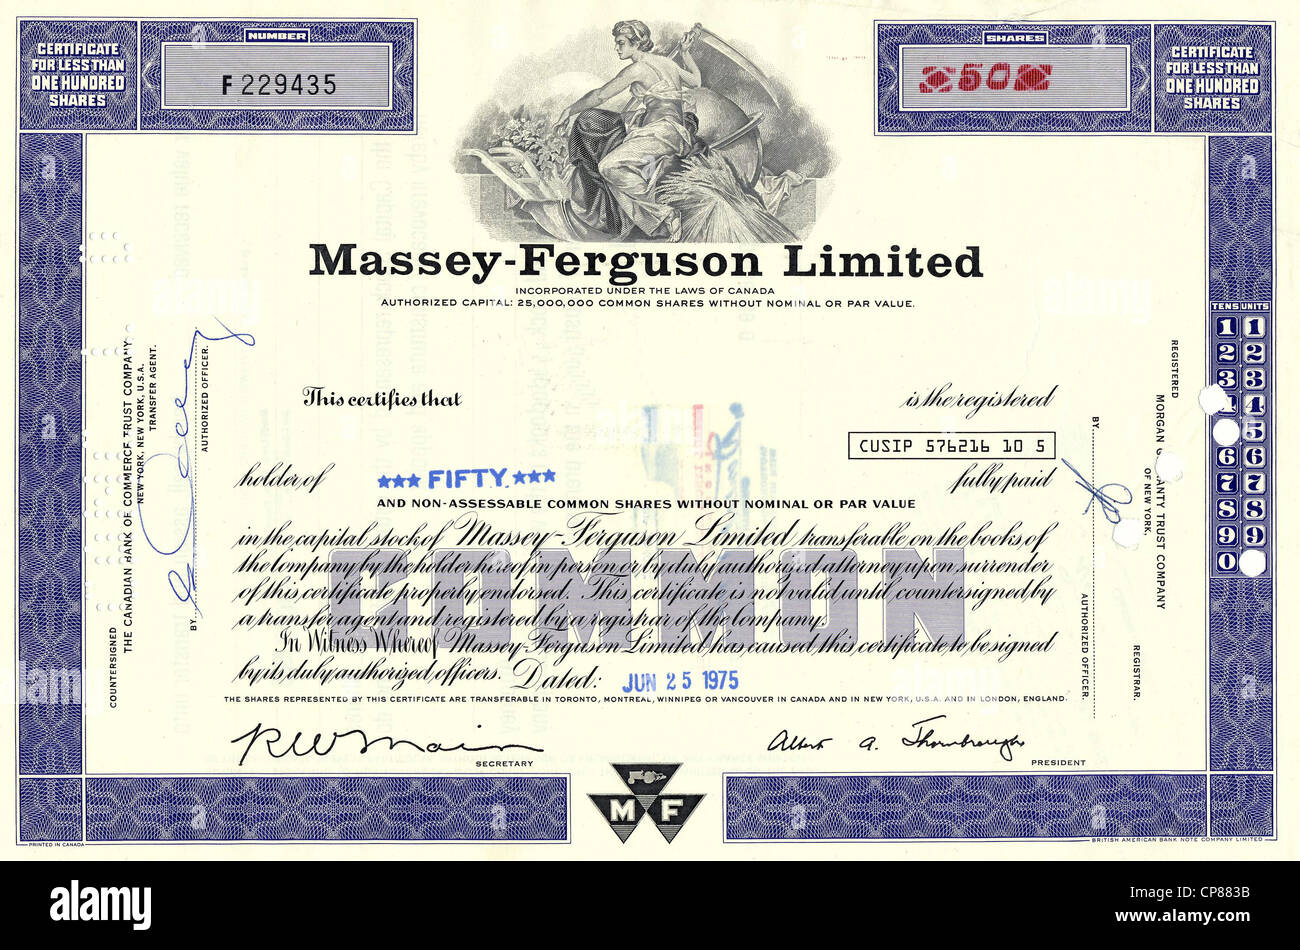 Historical Canadian stock certificate, 1975, Massey Ferguson, a manufacturer of agricultural machinery, tractors - Stock Image